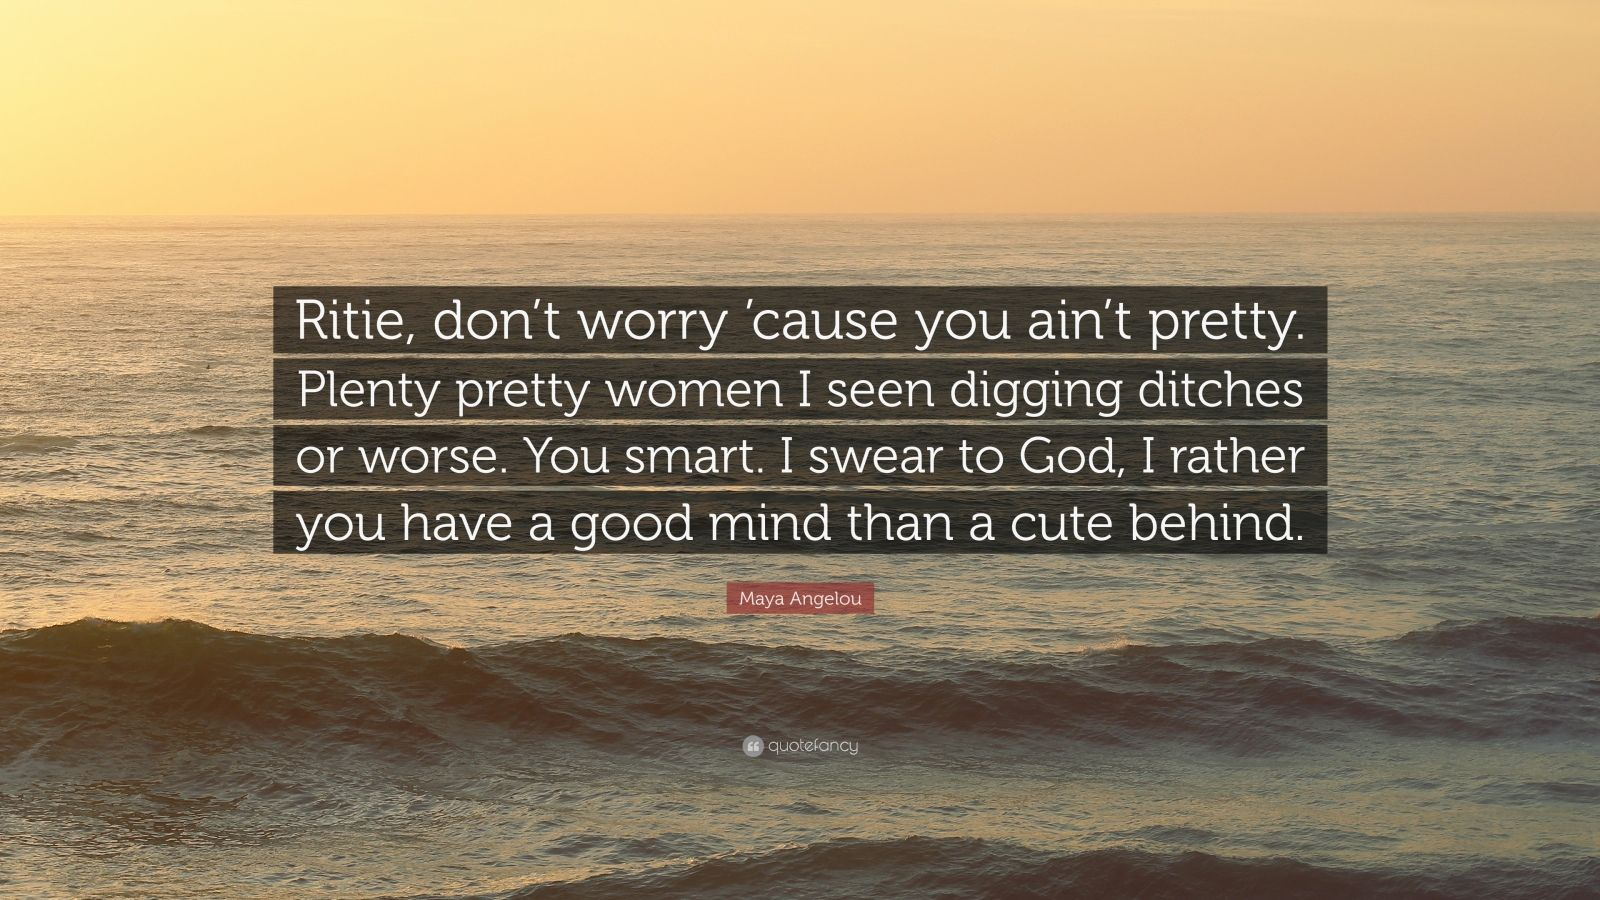 """Maya Angelou Quote: """"Ritie, don't worry 'cause you ain't pretty. Plenty pretty women I seen digging ditches or worse. You smart. I swear to God, I rather you have a good mind than a cute behind."""""""